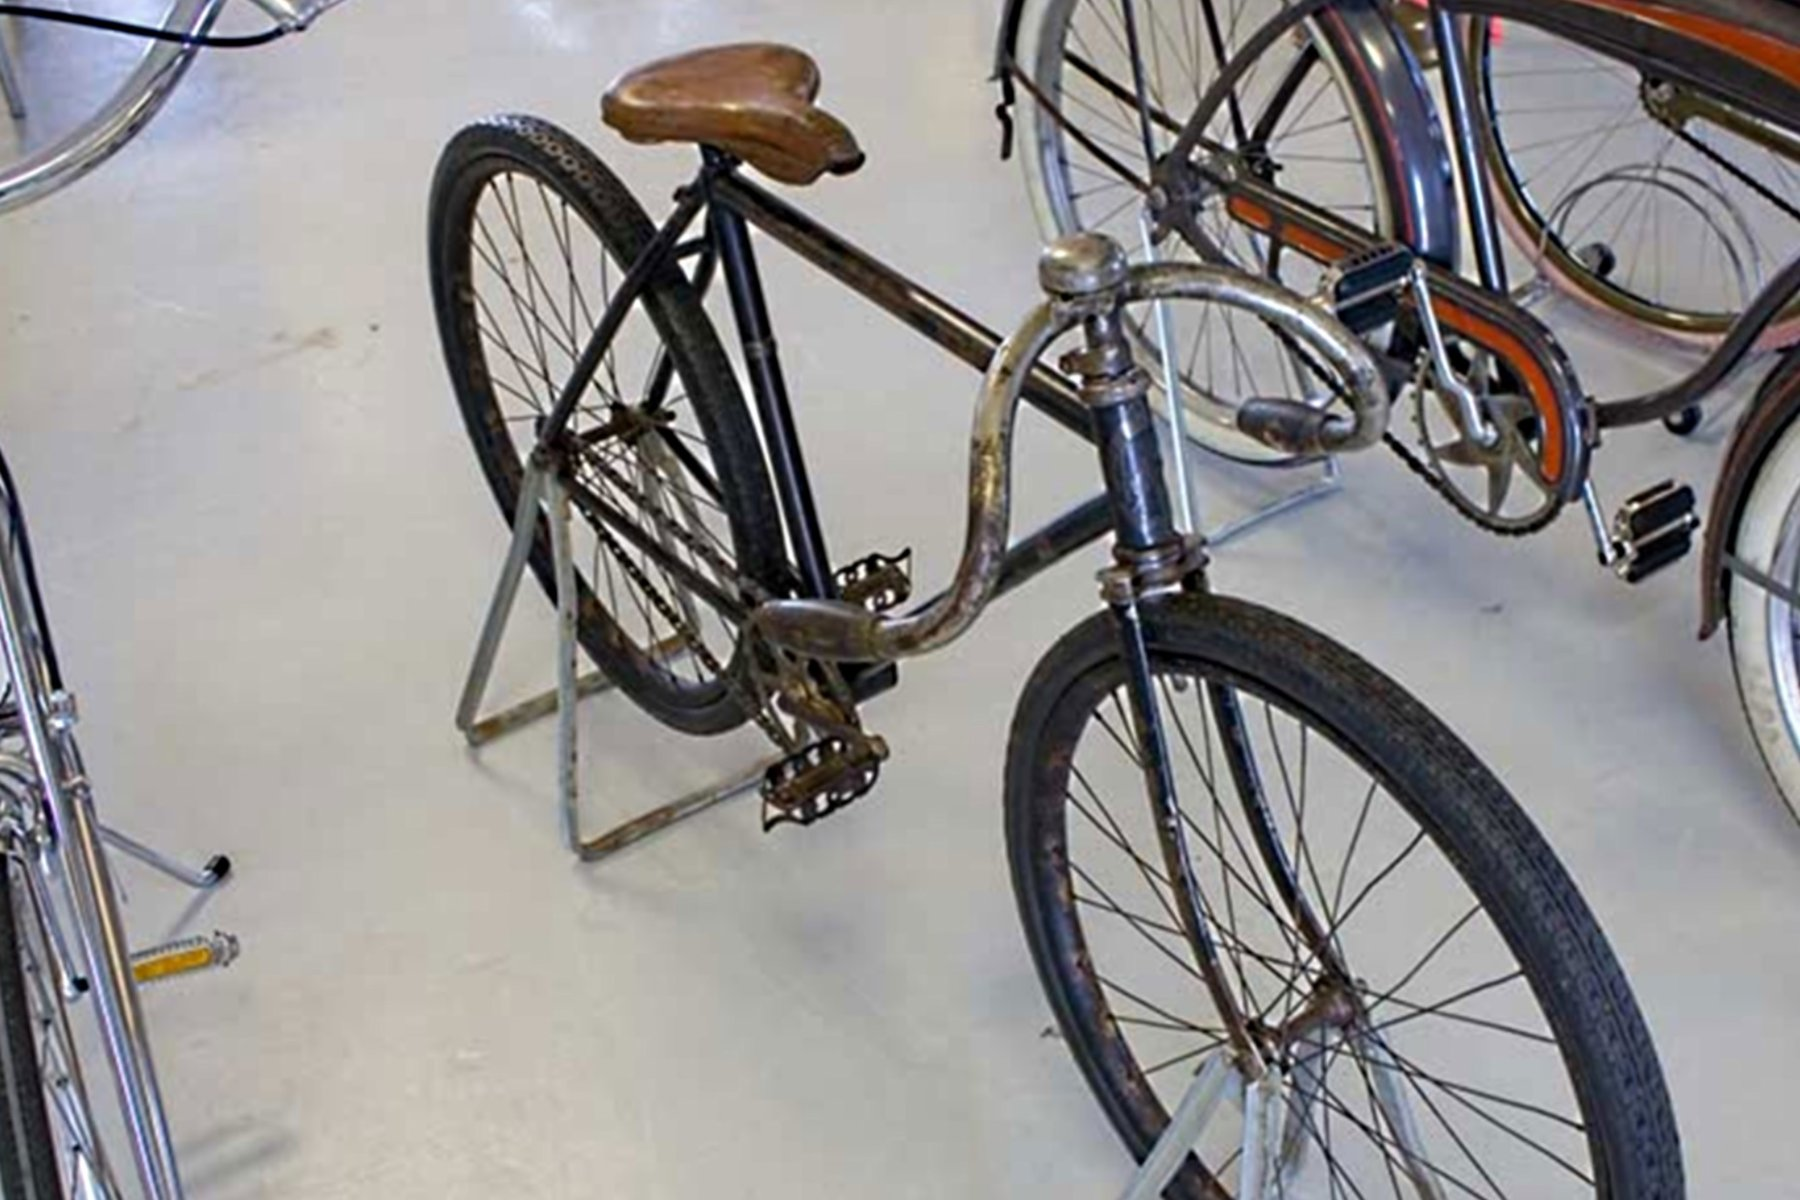 1901 INDIAN special-racer axel stands.jpg